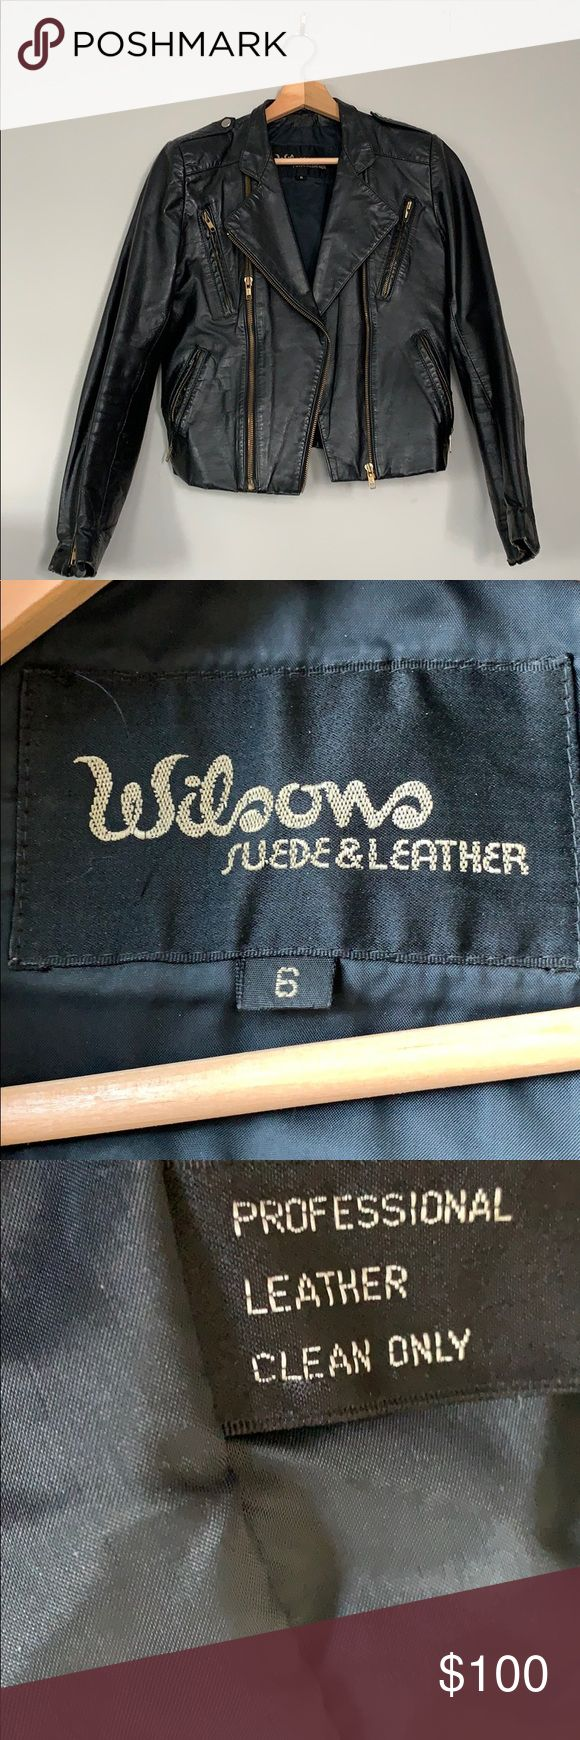 Vintage black Wilson's leather jacket Sz 6 Vintage black